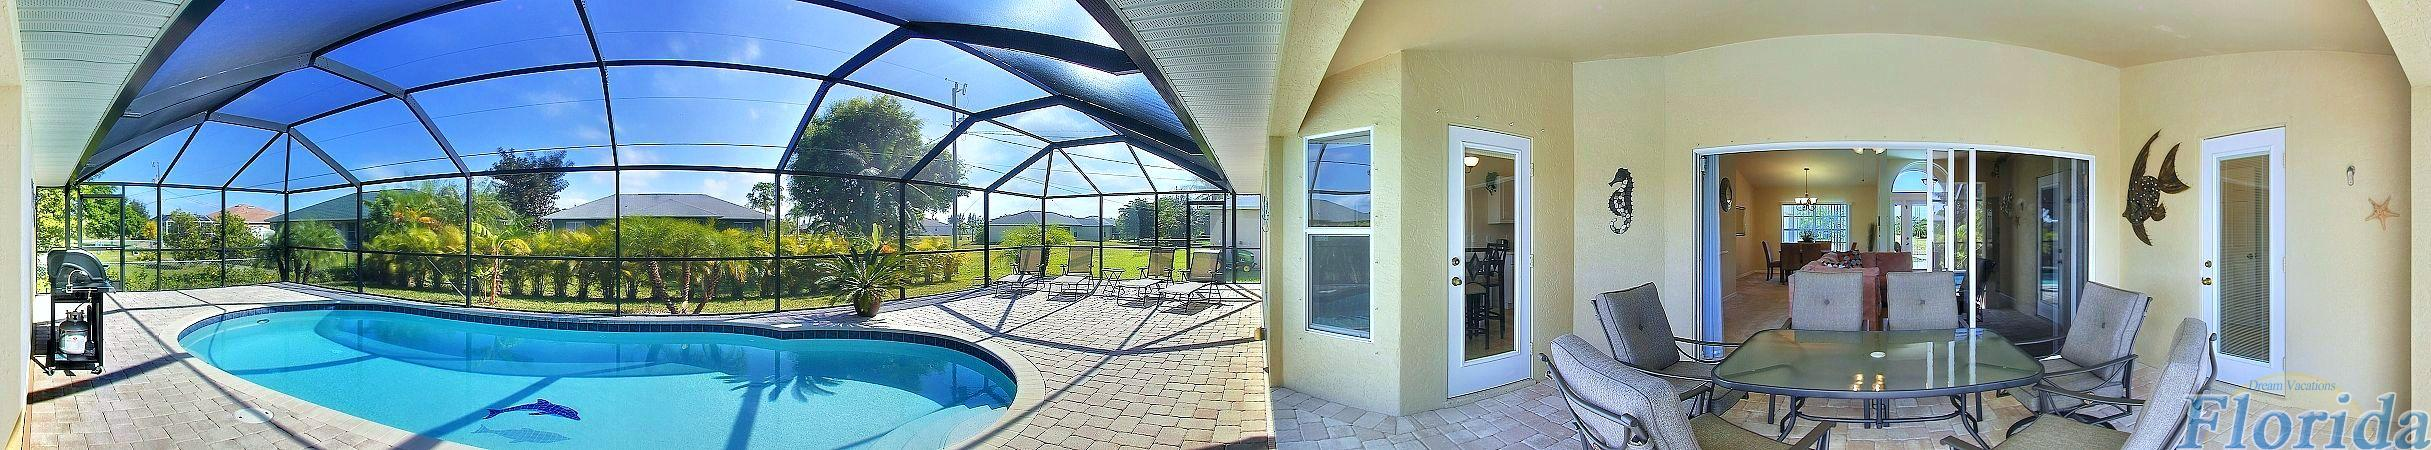 Wide angle view of pool and patio